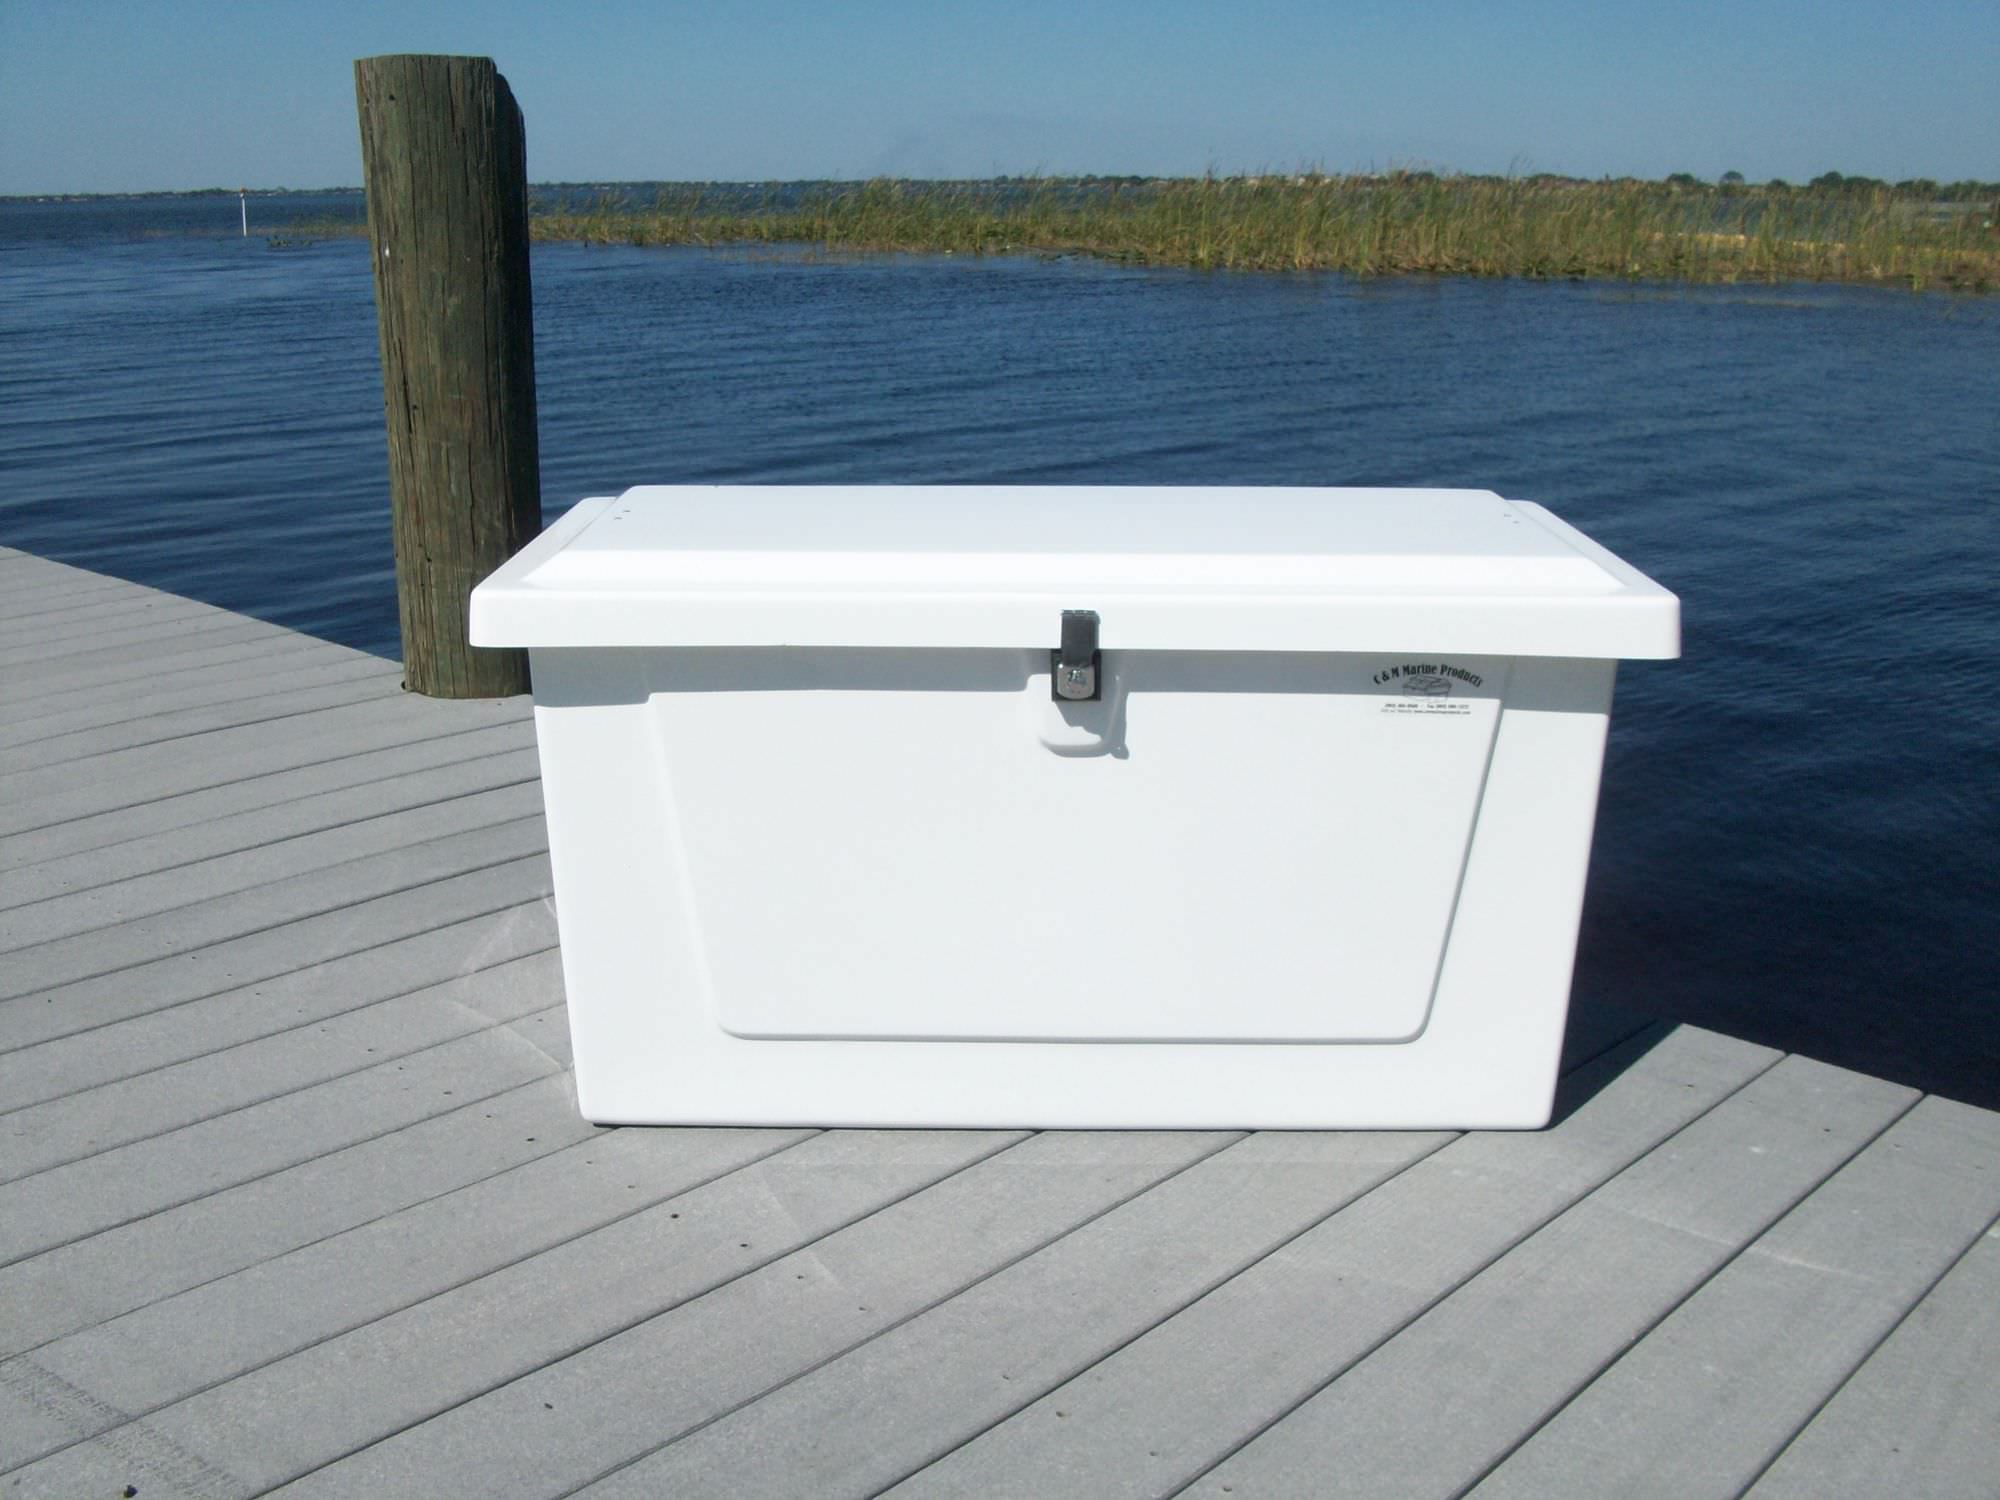 Keeping Outdoor Storage Clean With A Fiberglass Dock Box